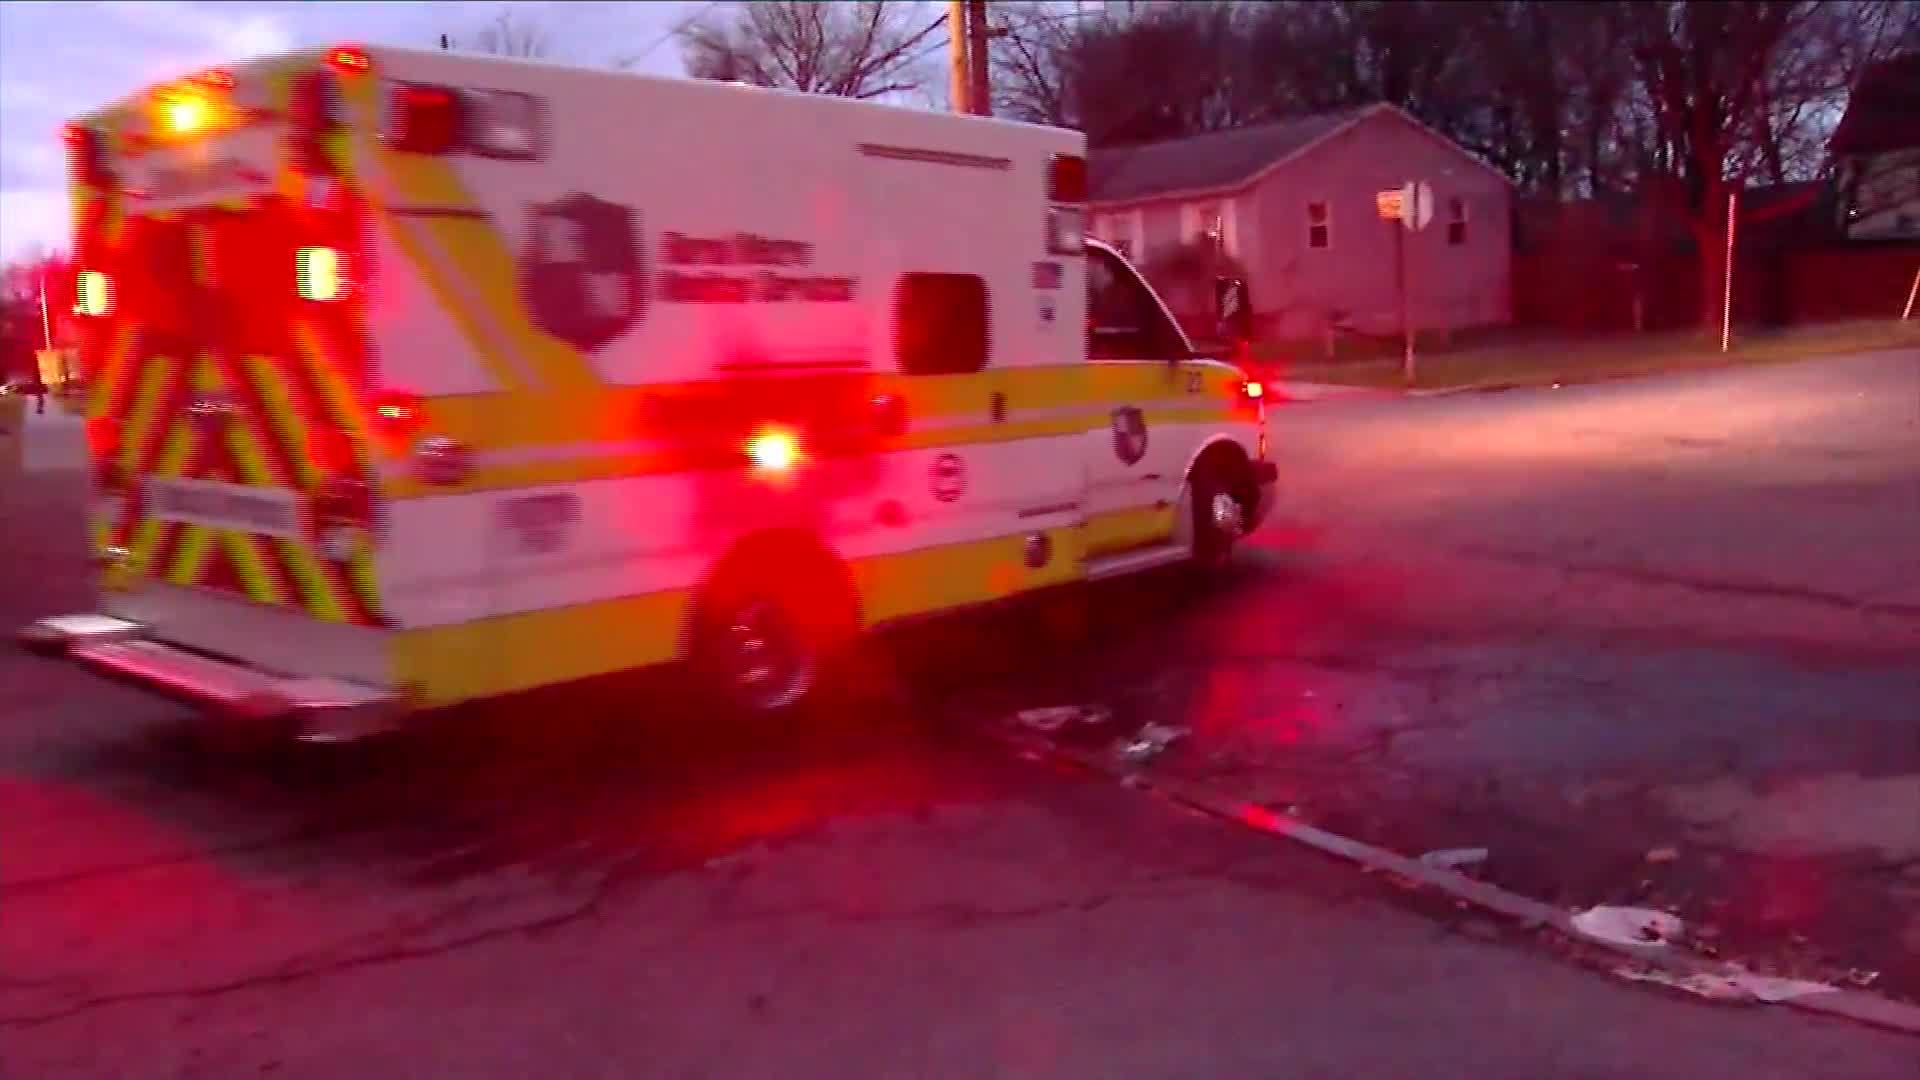 Ambulance_companies_already_strapped_for_2_20190306005316